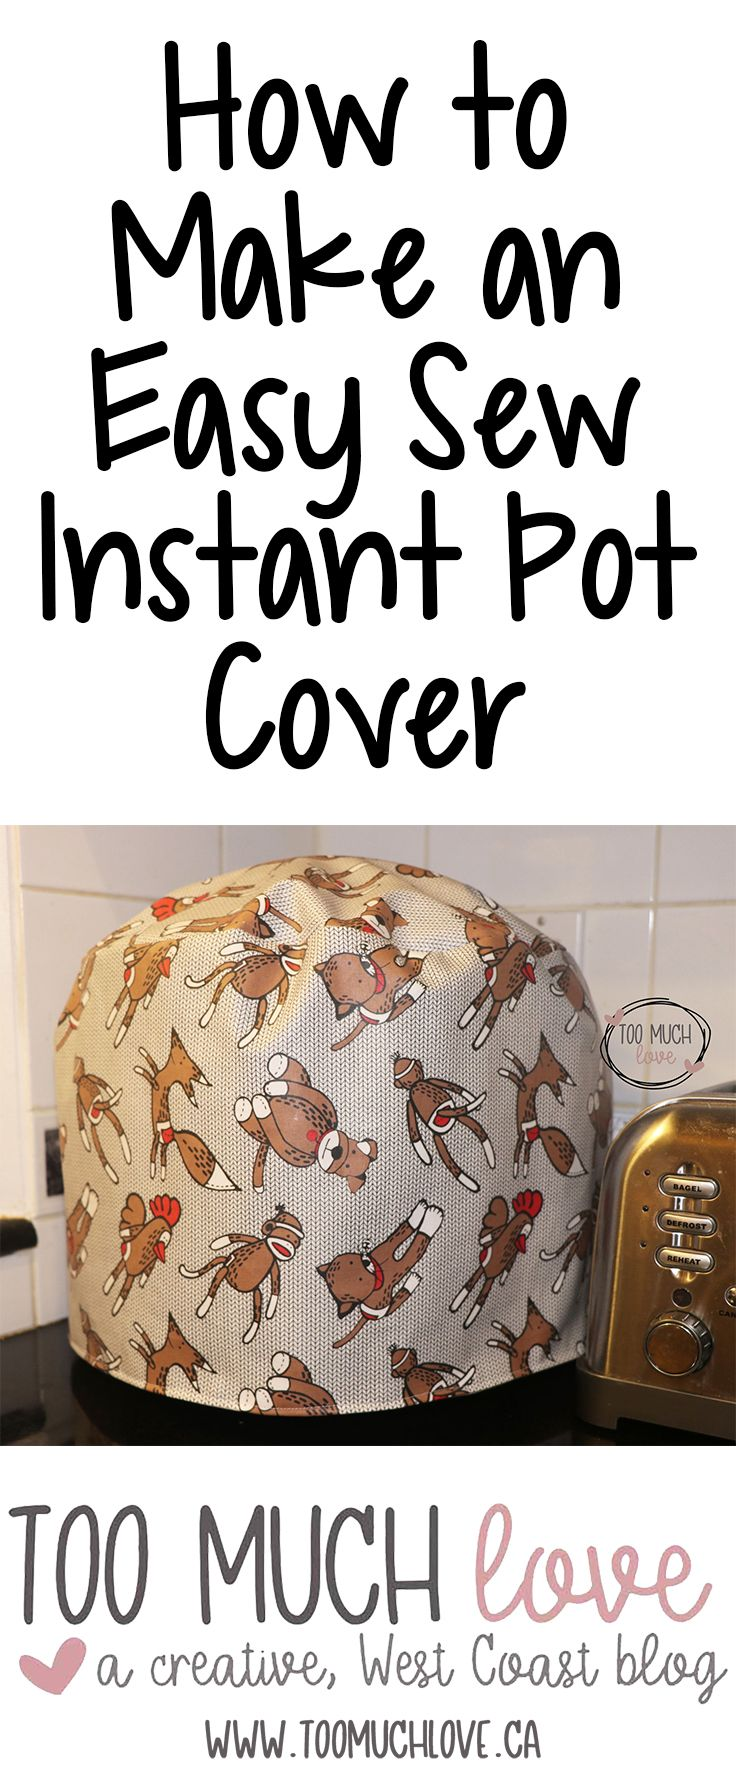 Make this easy sew Instant Pot Cover. Full instructions included.